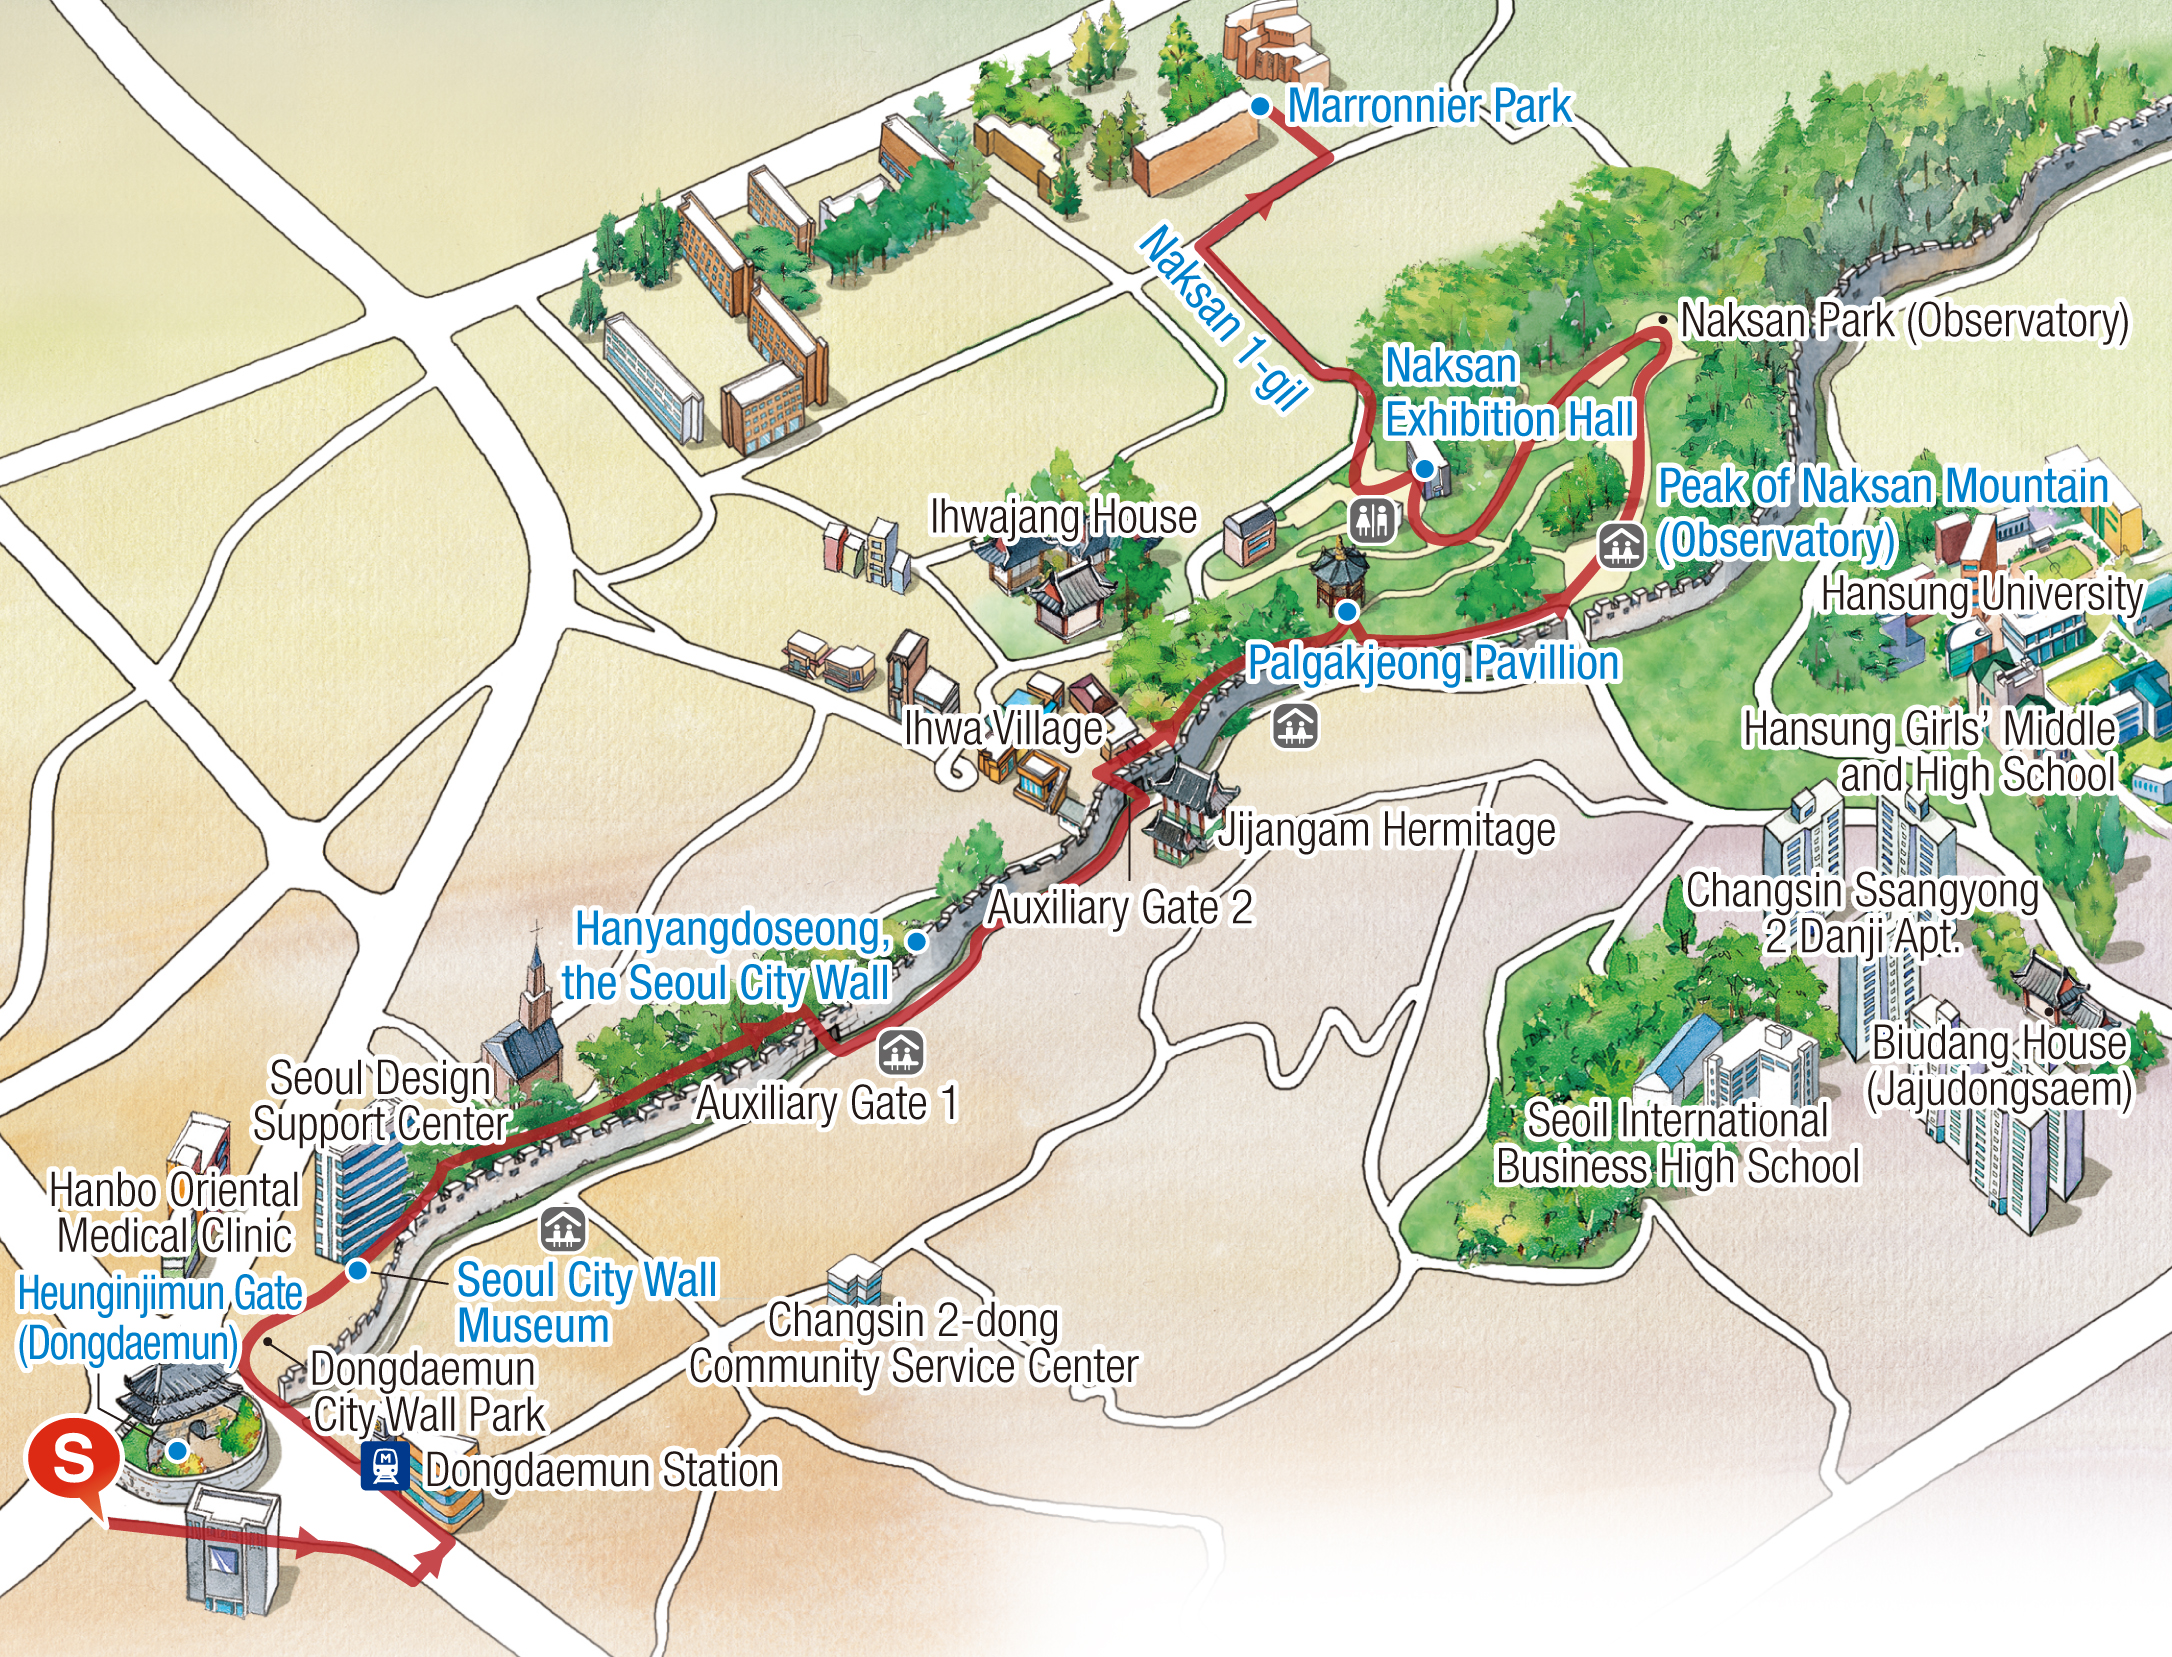 Map of Walking Tour Route : 1) Heunginjimun -> 2) Seoul City Wall Museum -> 3) Palgakjeong(Hongdeogi Field) -> 4) The top of Naksan(observatory) -> 5) Naksan Exhibition Hall Naksan 1-gil -> 6) Marronnier Park